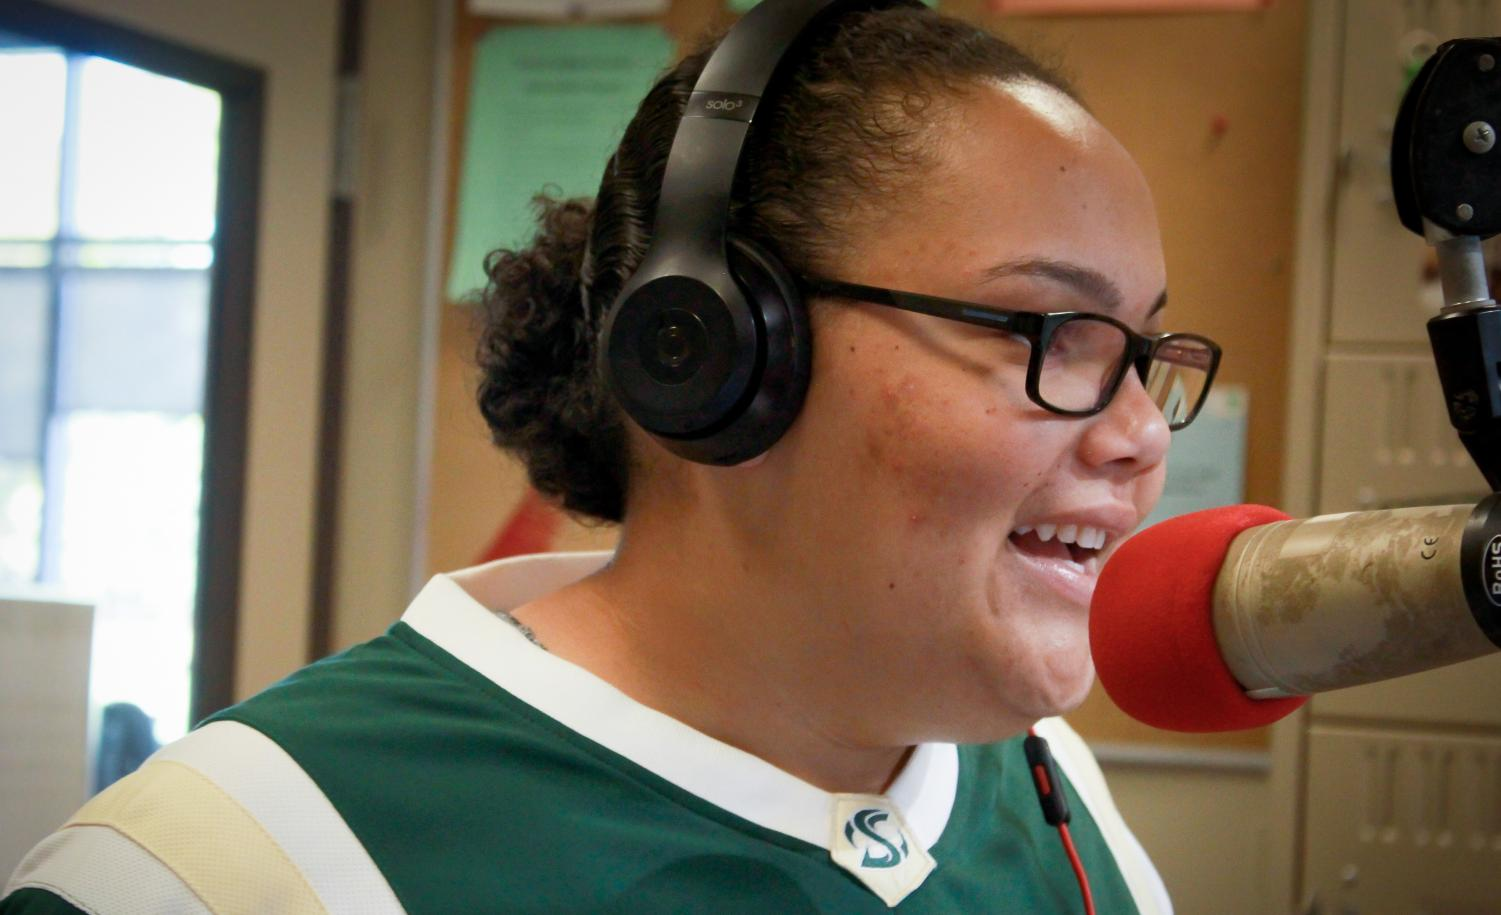 Sage Beamon, a Sacramento State sophomore, hosts her weekly radio show recorded in the KSSU studio located at the ASI hotspot on campus on Monday, Nov. 5.